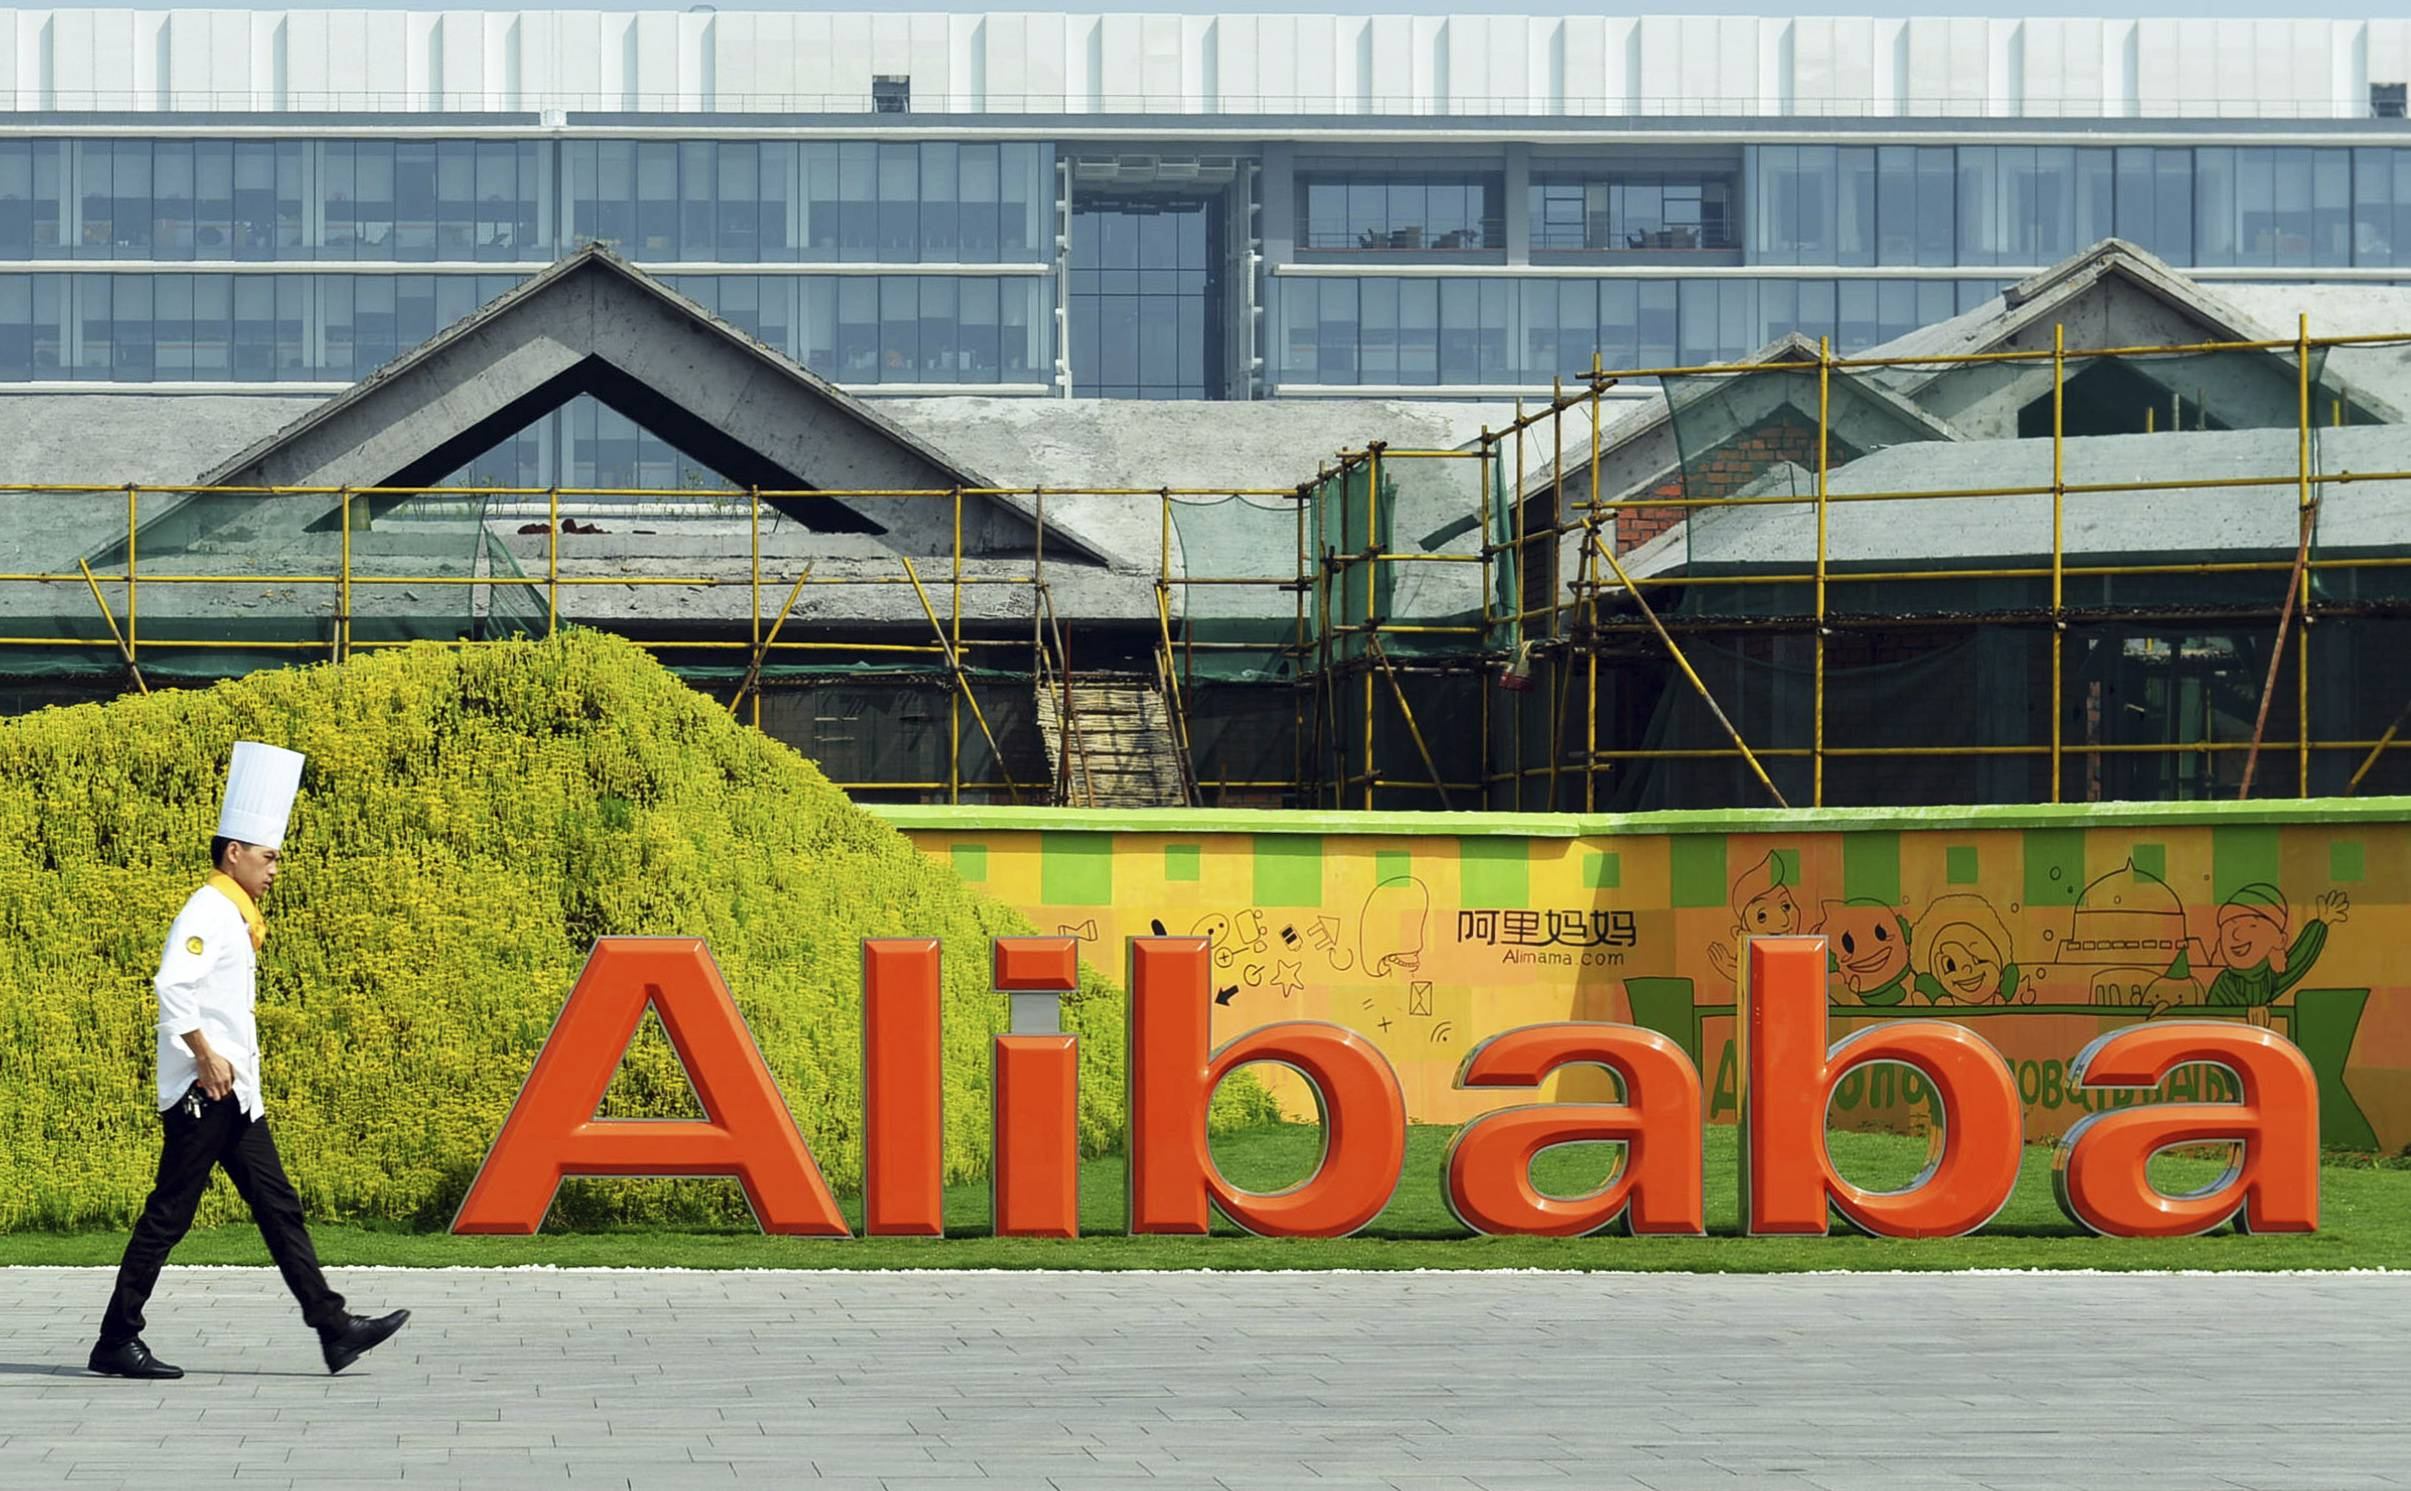 A chef walks in the headquarter campus of Alibaba Group in Hangzhou in eastern China's Zhejiang province. Foreigners who want to buy Alibaba Group shares in the Chinese e-commerce giant's U.S. public offering will need to get comfortable with an unusual business structure.